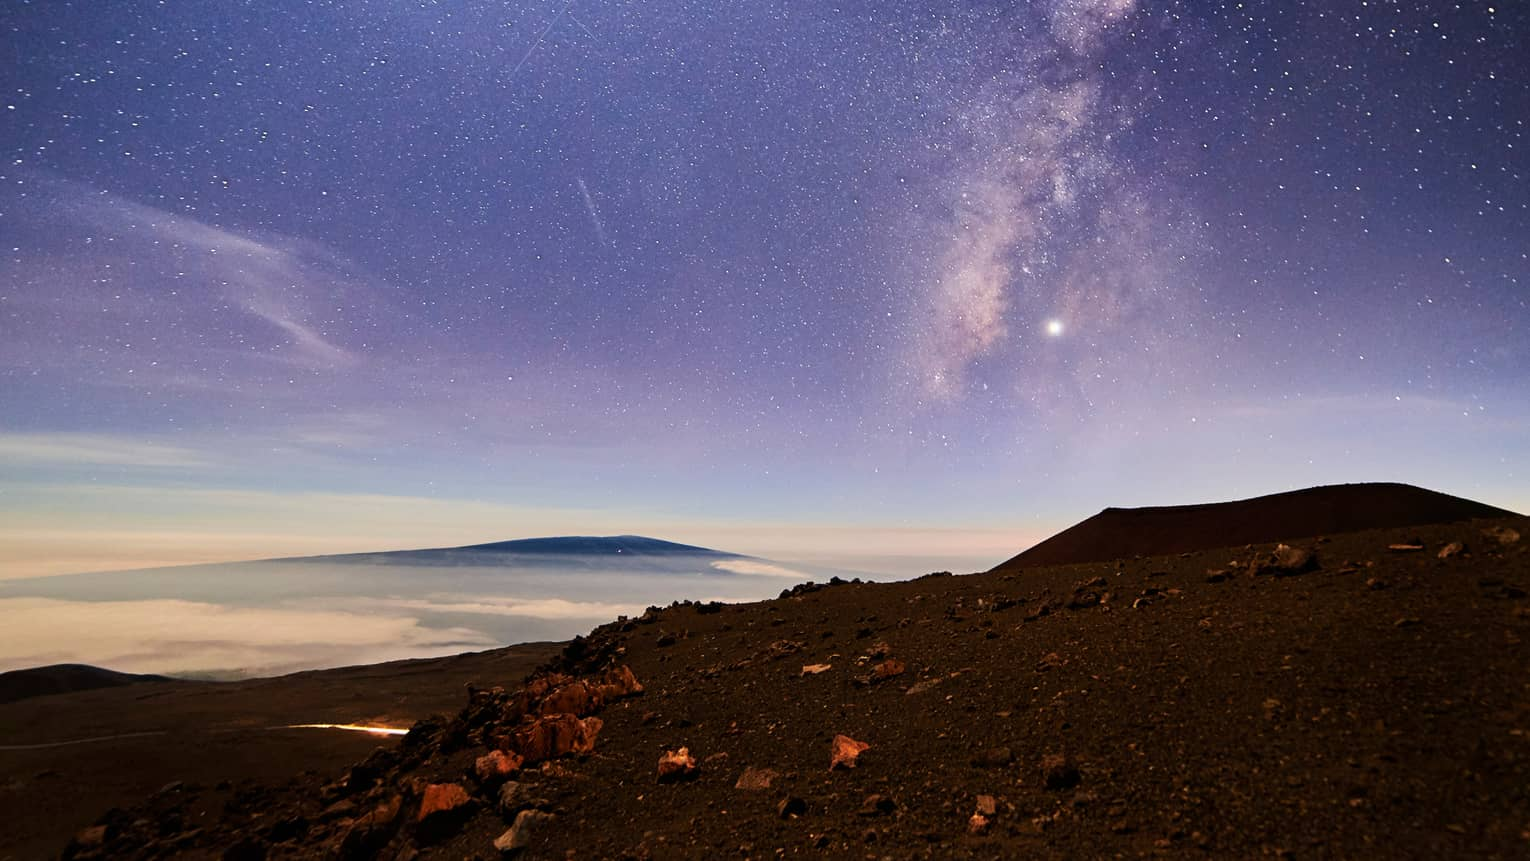 Sunrise under starry sky above mountain, volcanic rocks